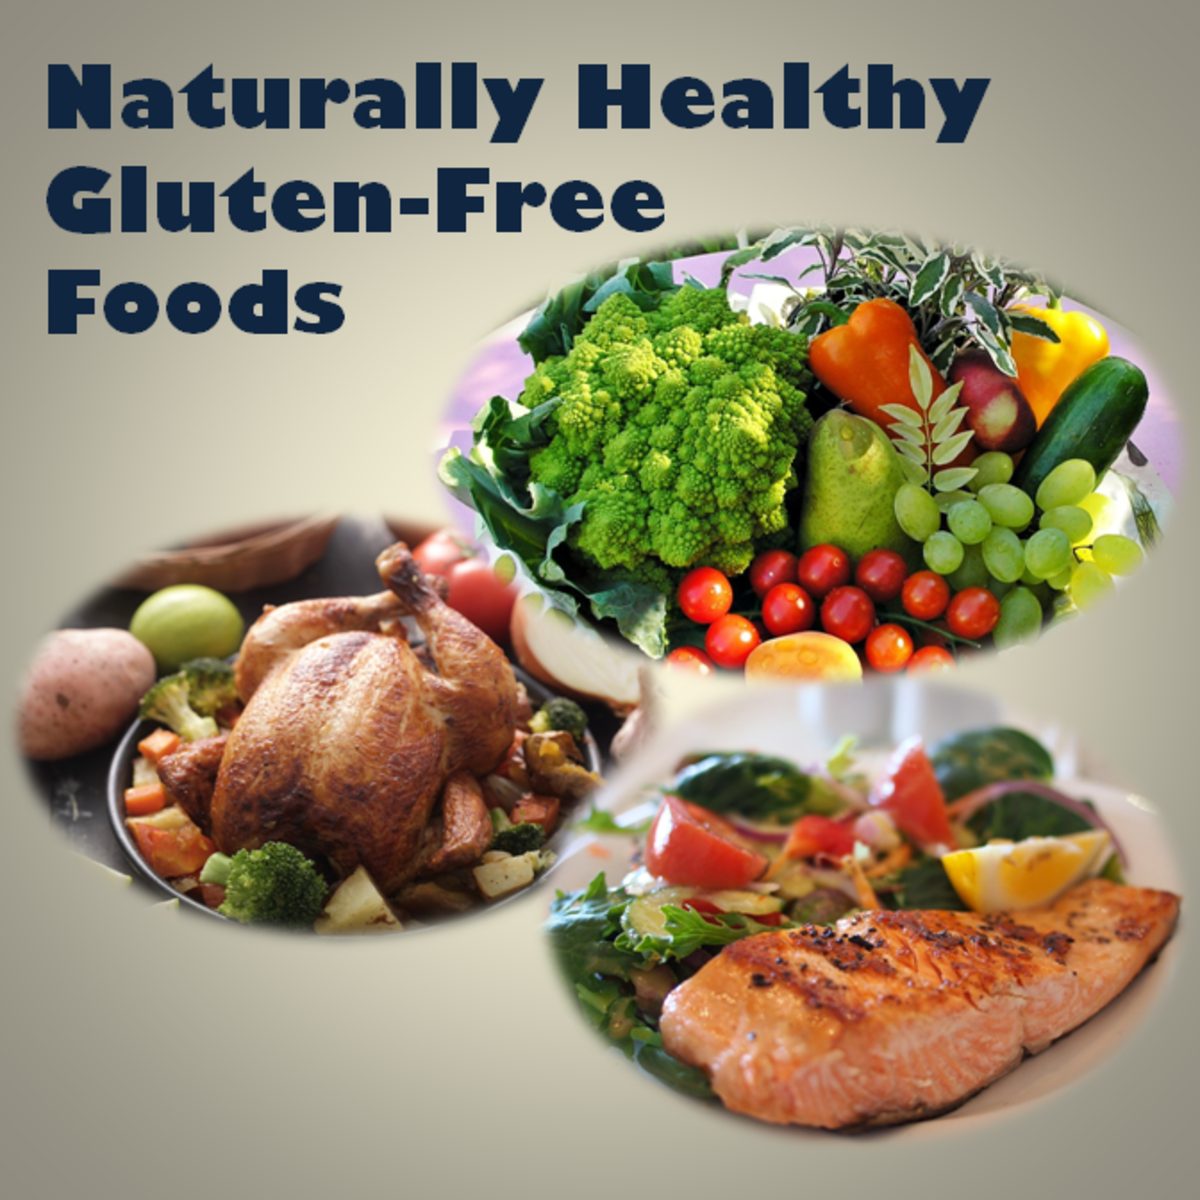 Eat more naturally healthy gluten-free foods like fruits and vegetables, meat, poultry and fish products.